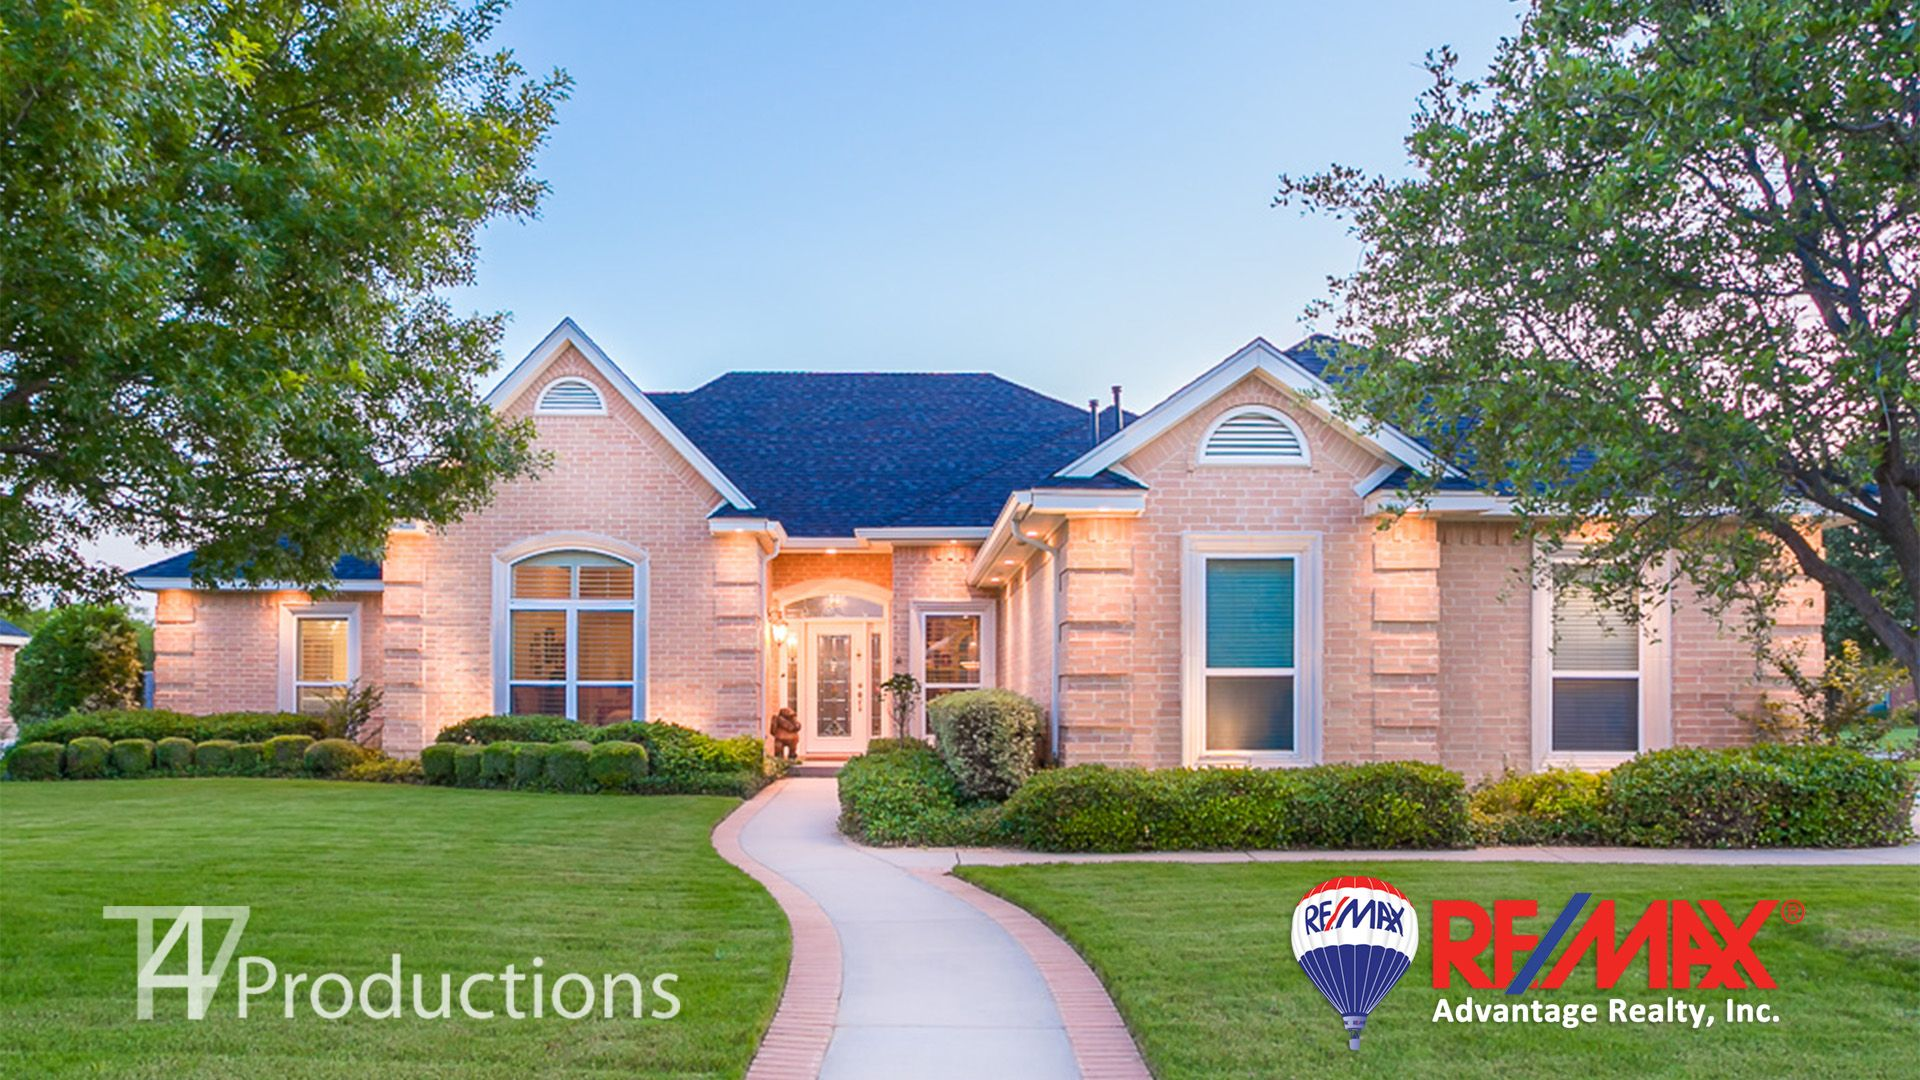 ReMax of Abilene http://www.t47productions.com/blog/2016/7/20/real-estate-photography-for-remax-of-abilene